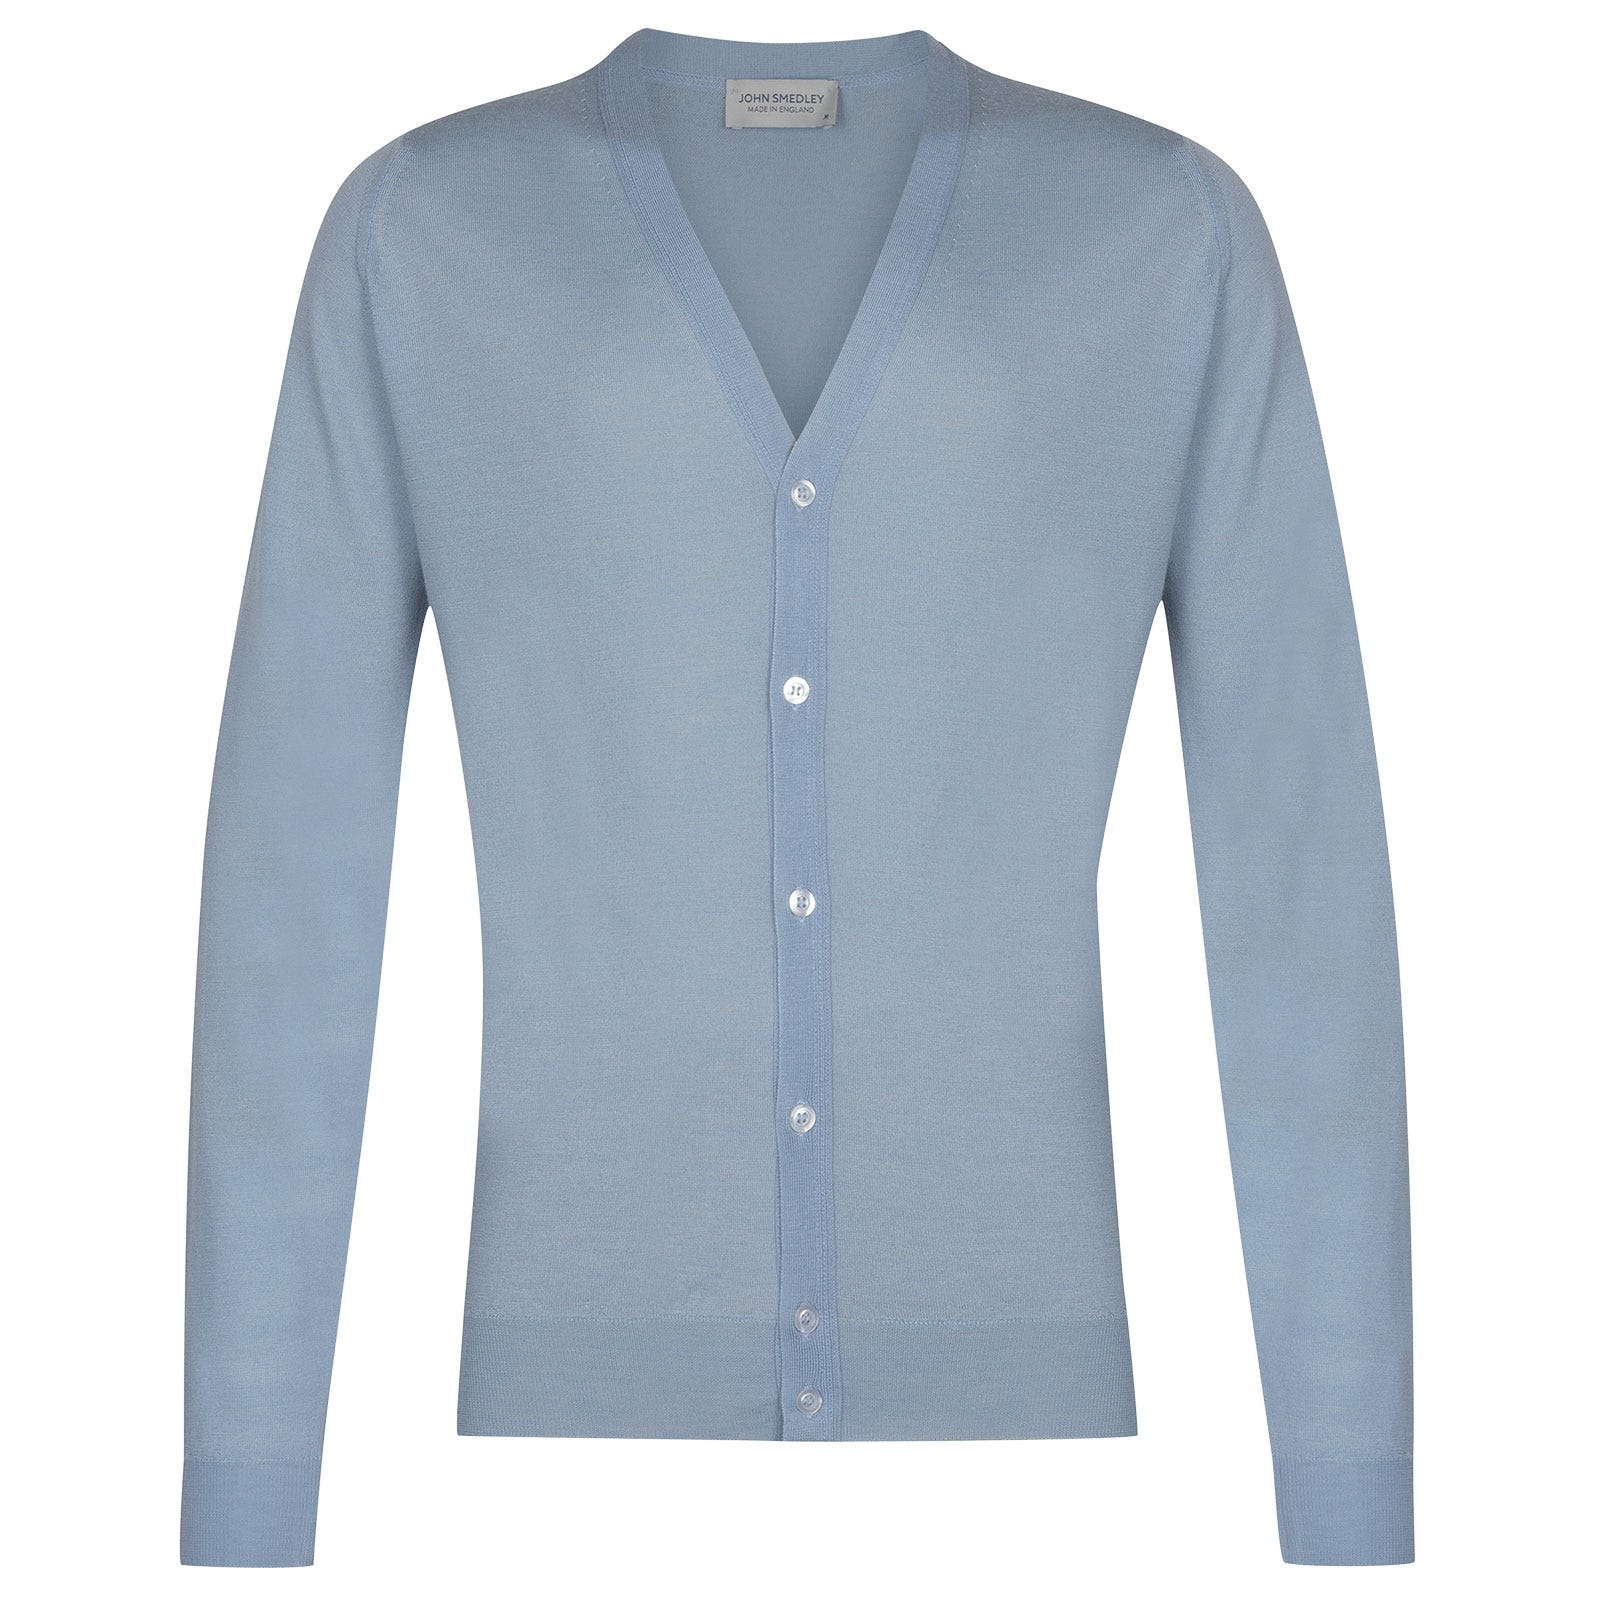 John Smedley Petworth in Dusk Blue Cardigan-LGE